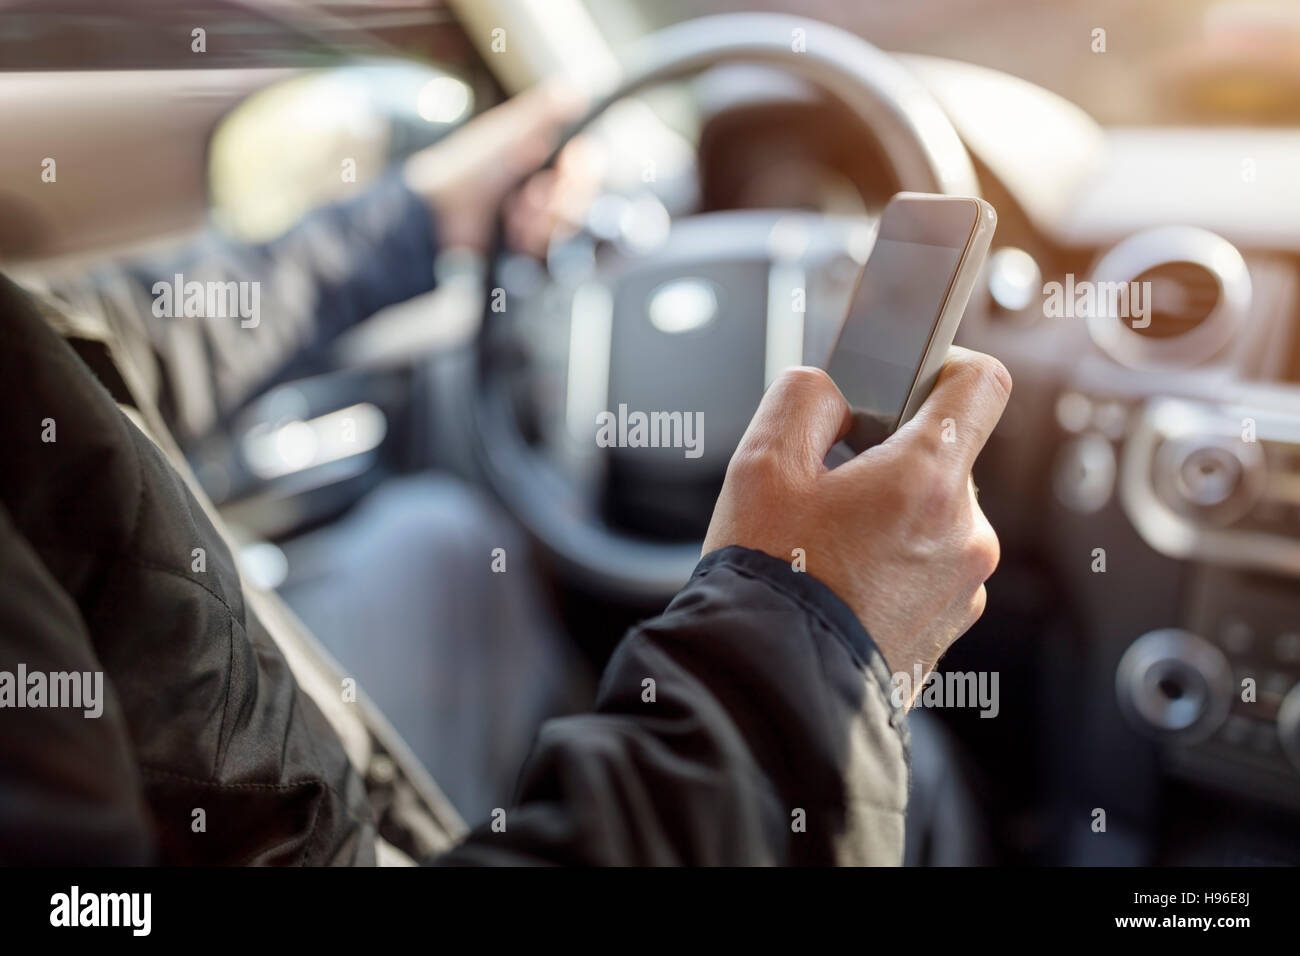 Texting while driving using cell phone in car - Stock Image